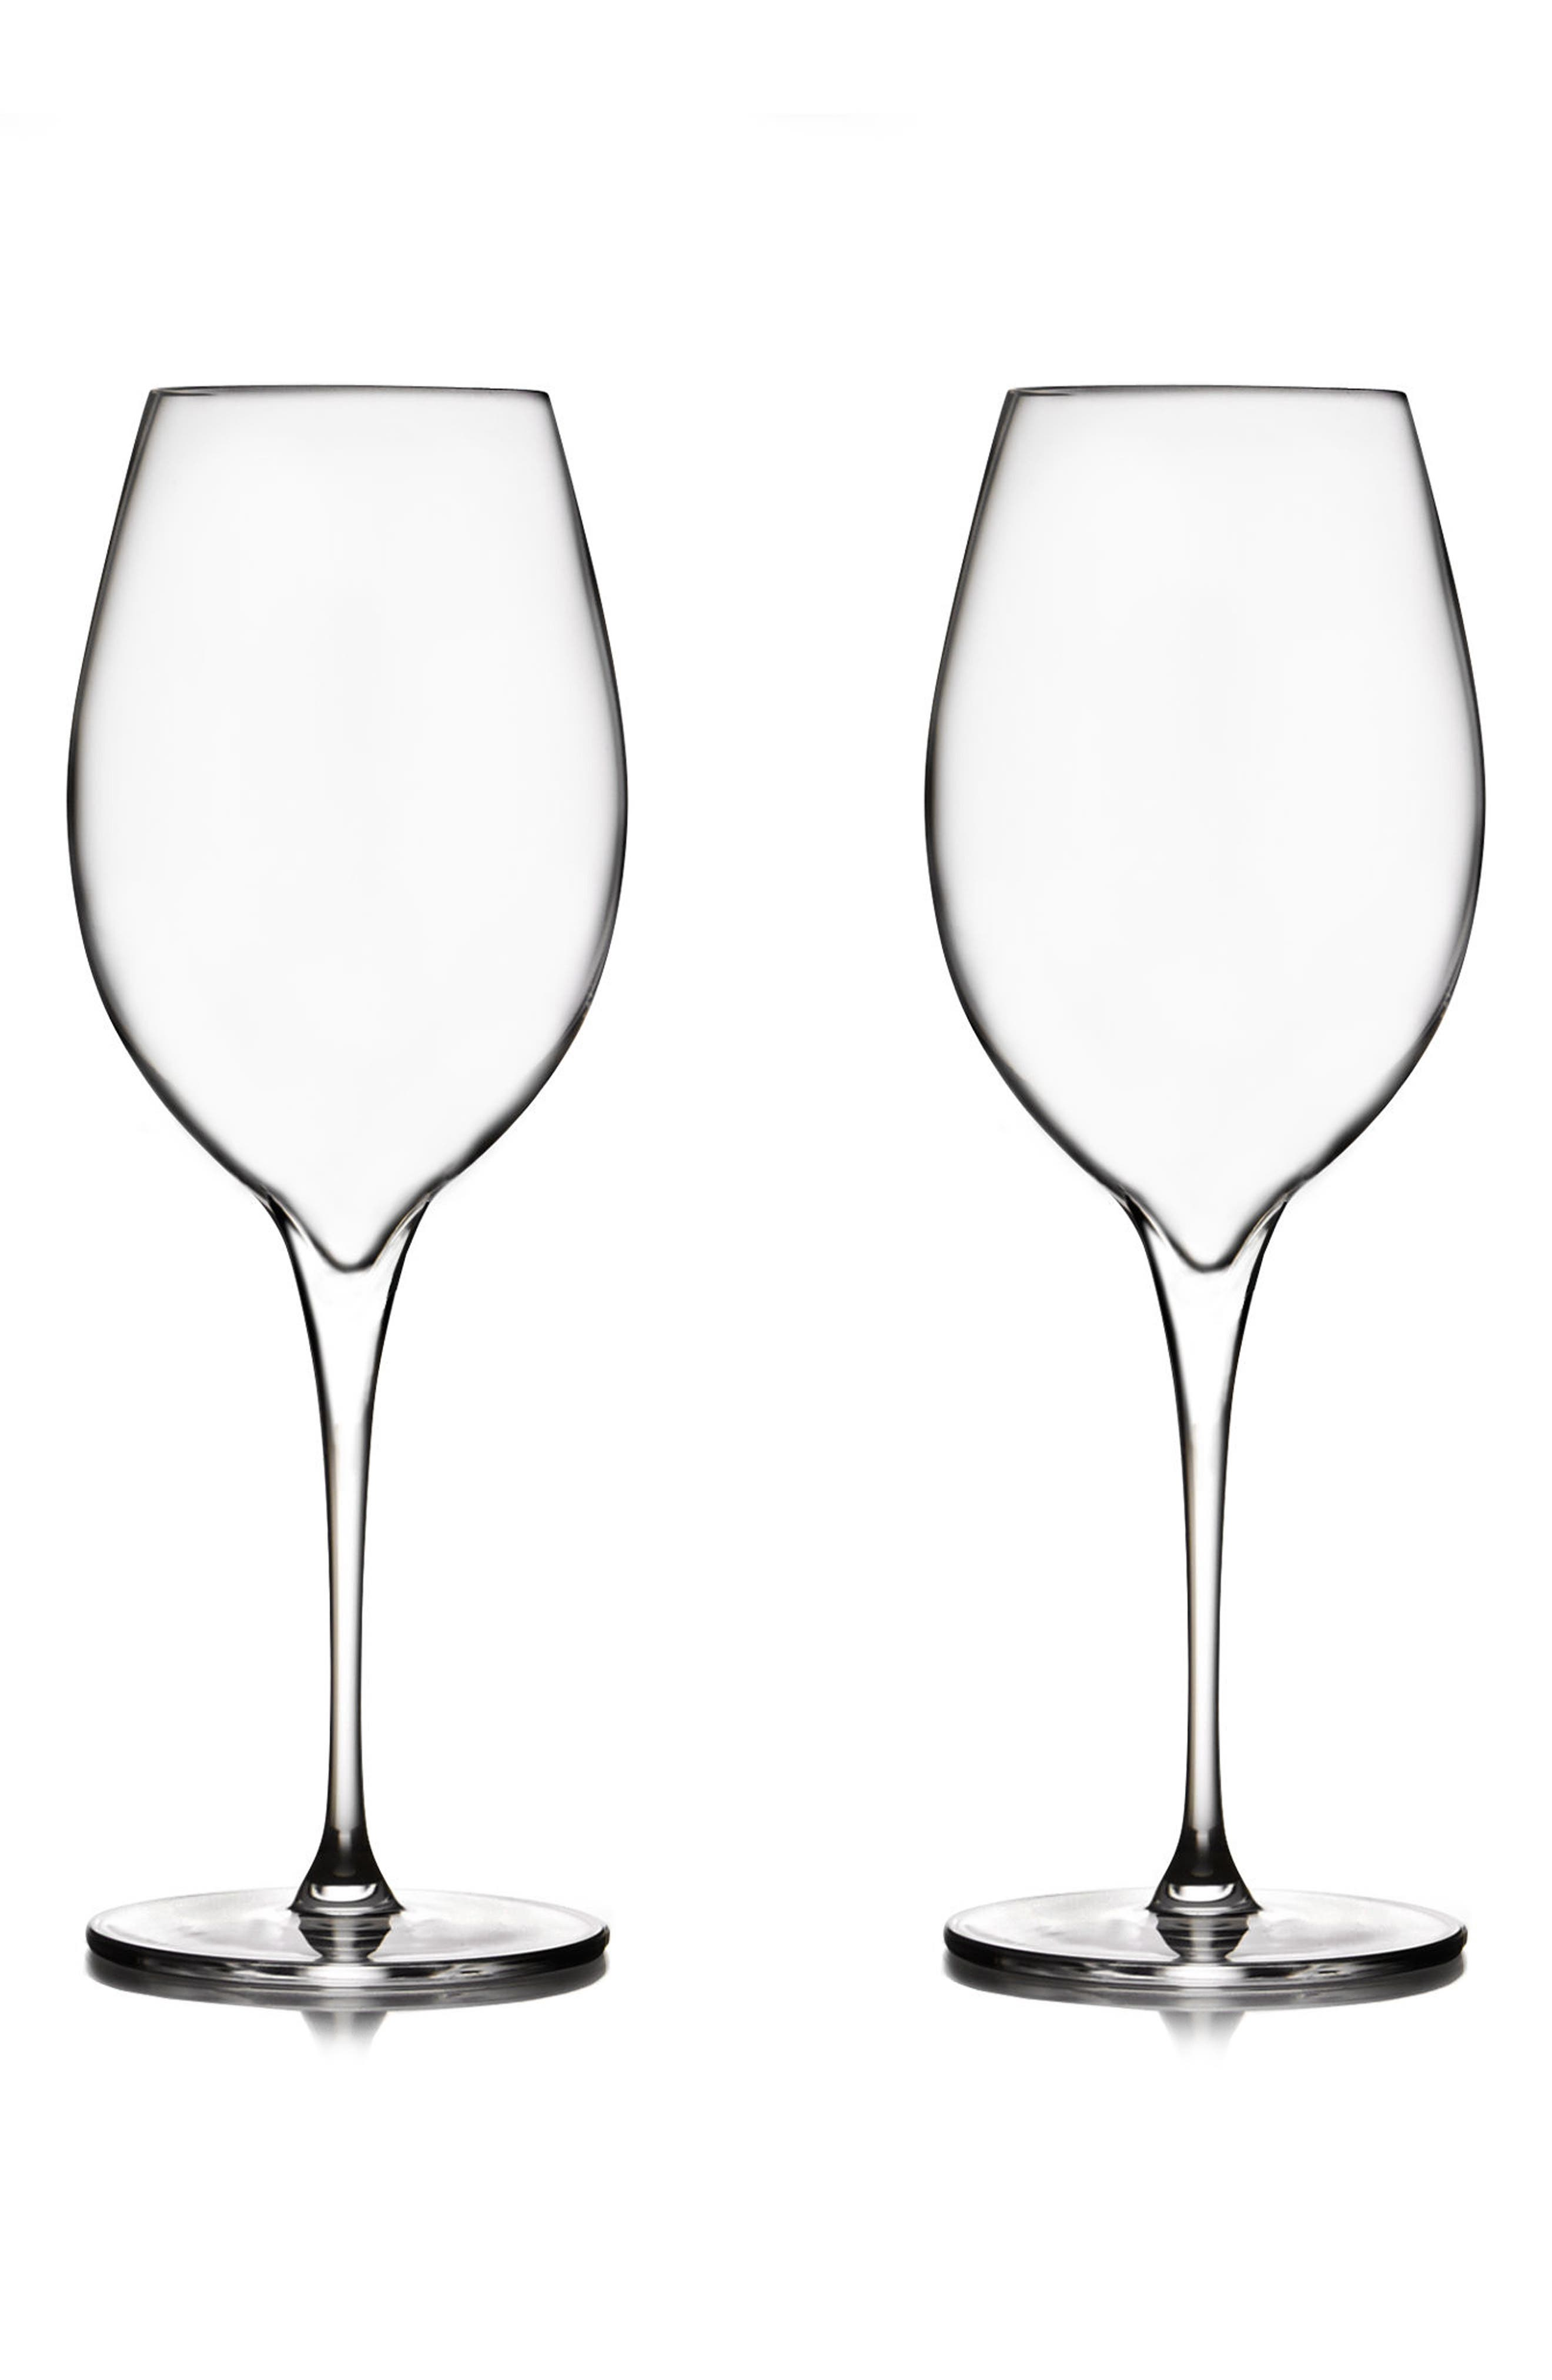 Vie Set of 2 Pinot Grigio Glasses,                             Main thumbnail 1, color,                             100